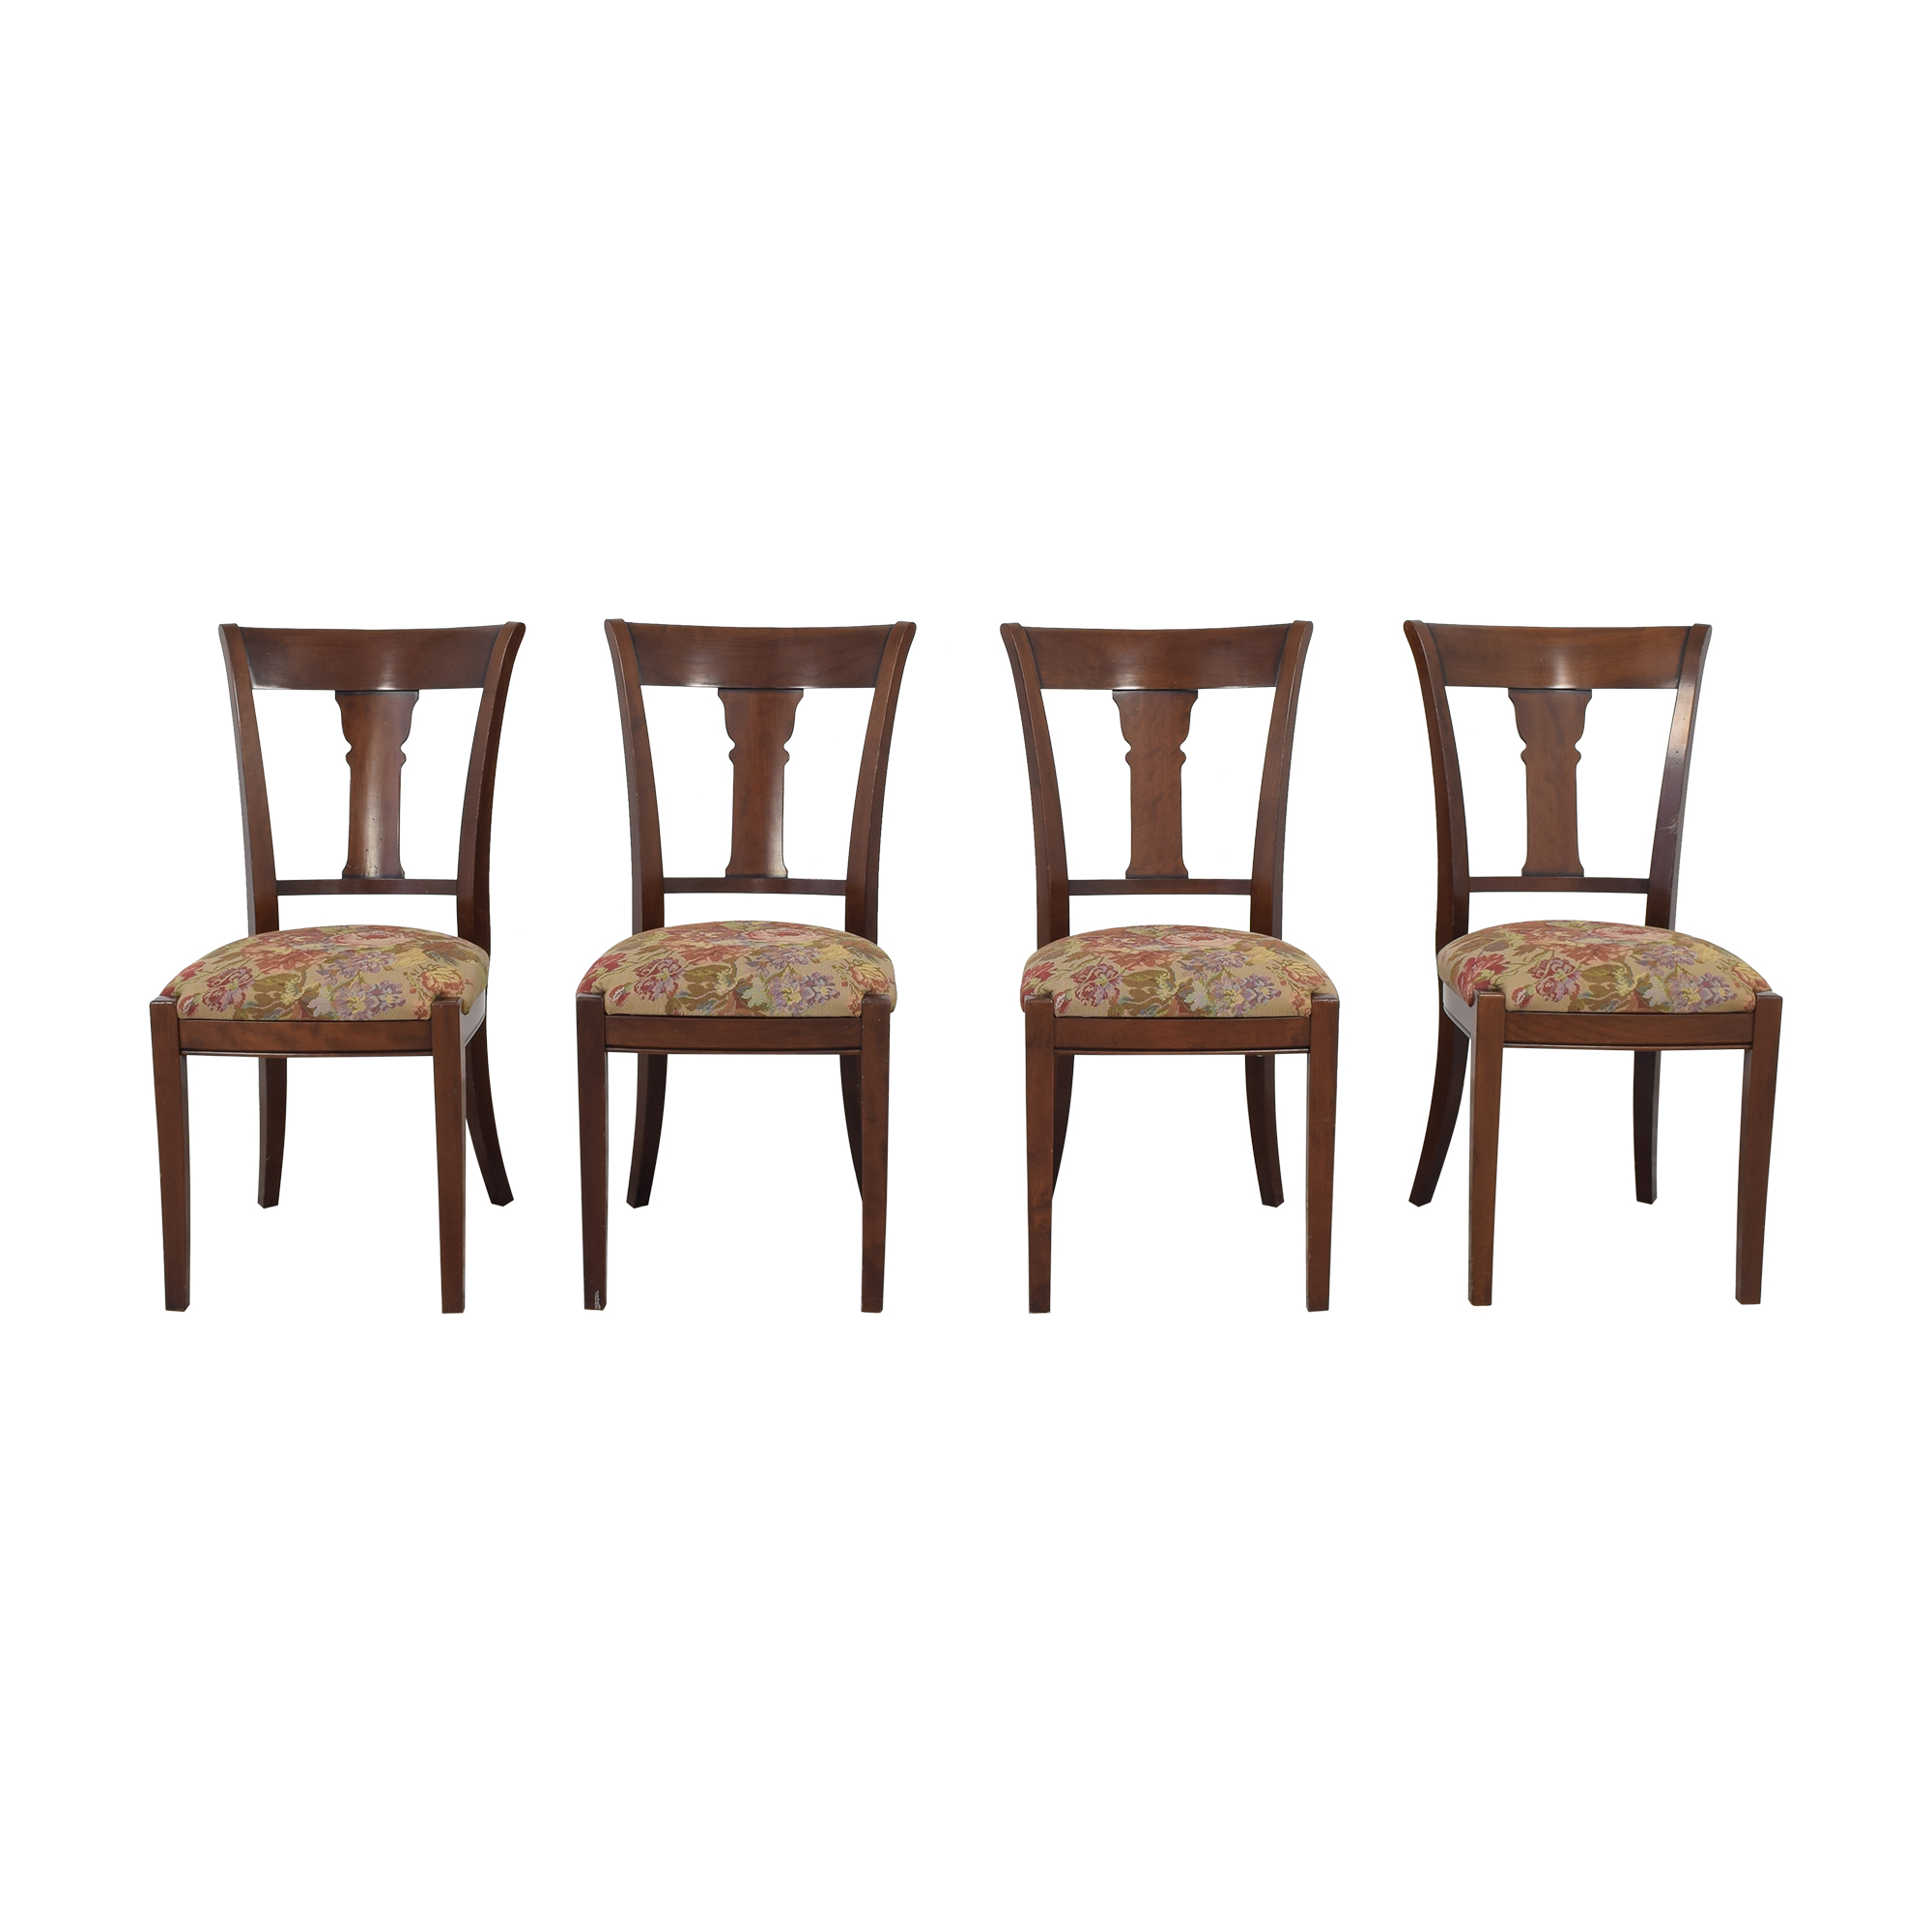 Grange Grange Upholstered Dining Chairs second hand